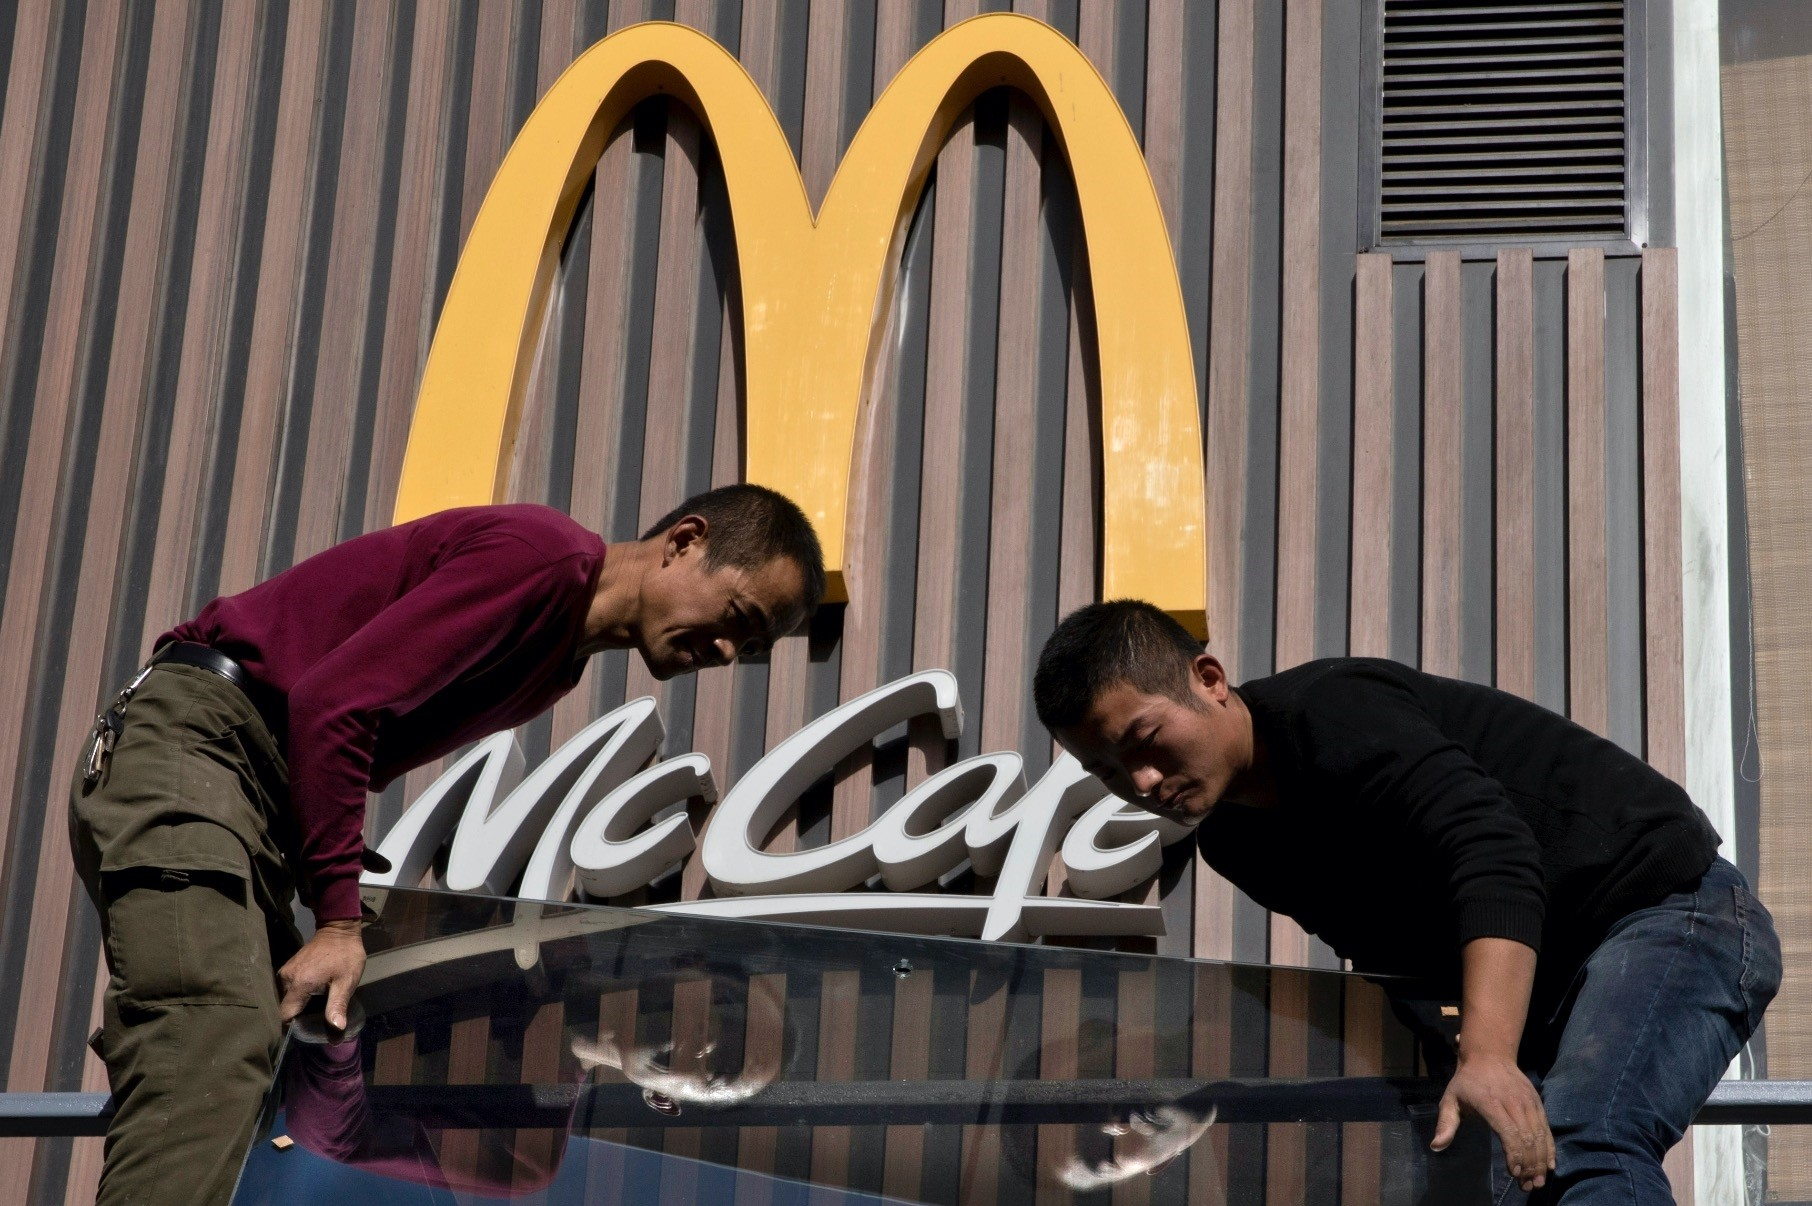 Chinese workers install glass panels near the logo for U.S. fast food brand McDonaldu2019s in Beijing.